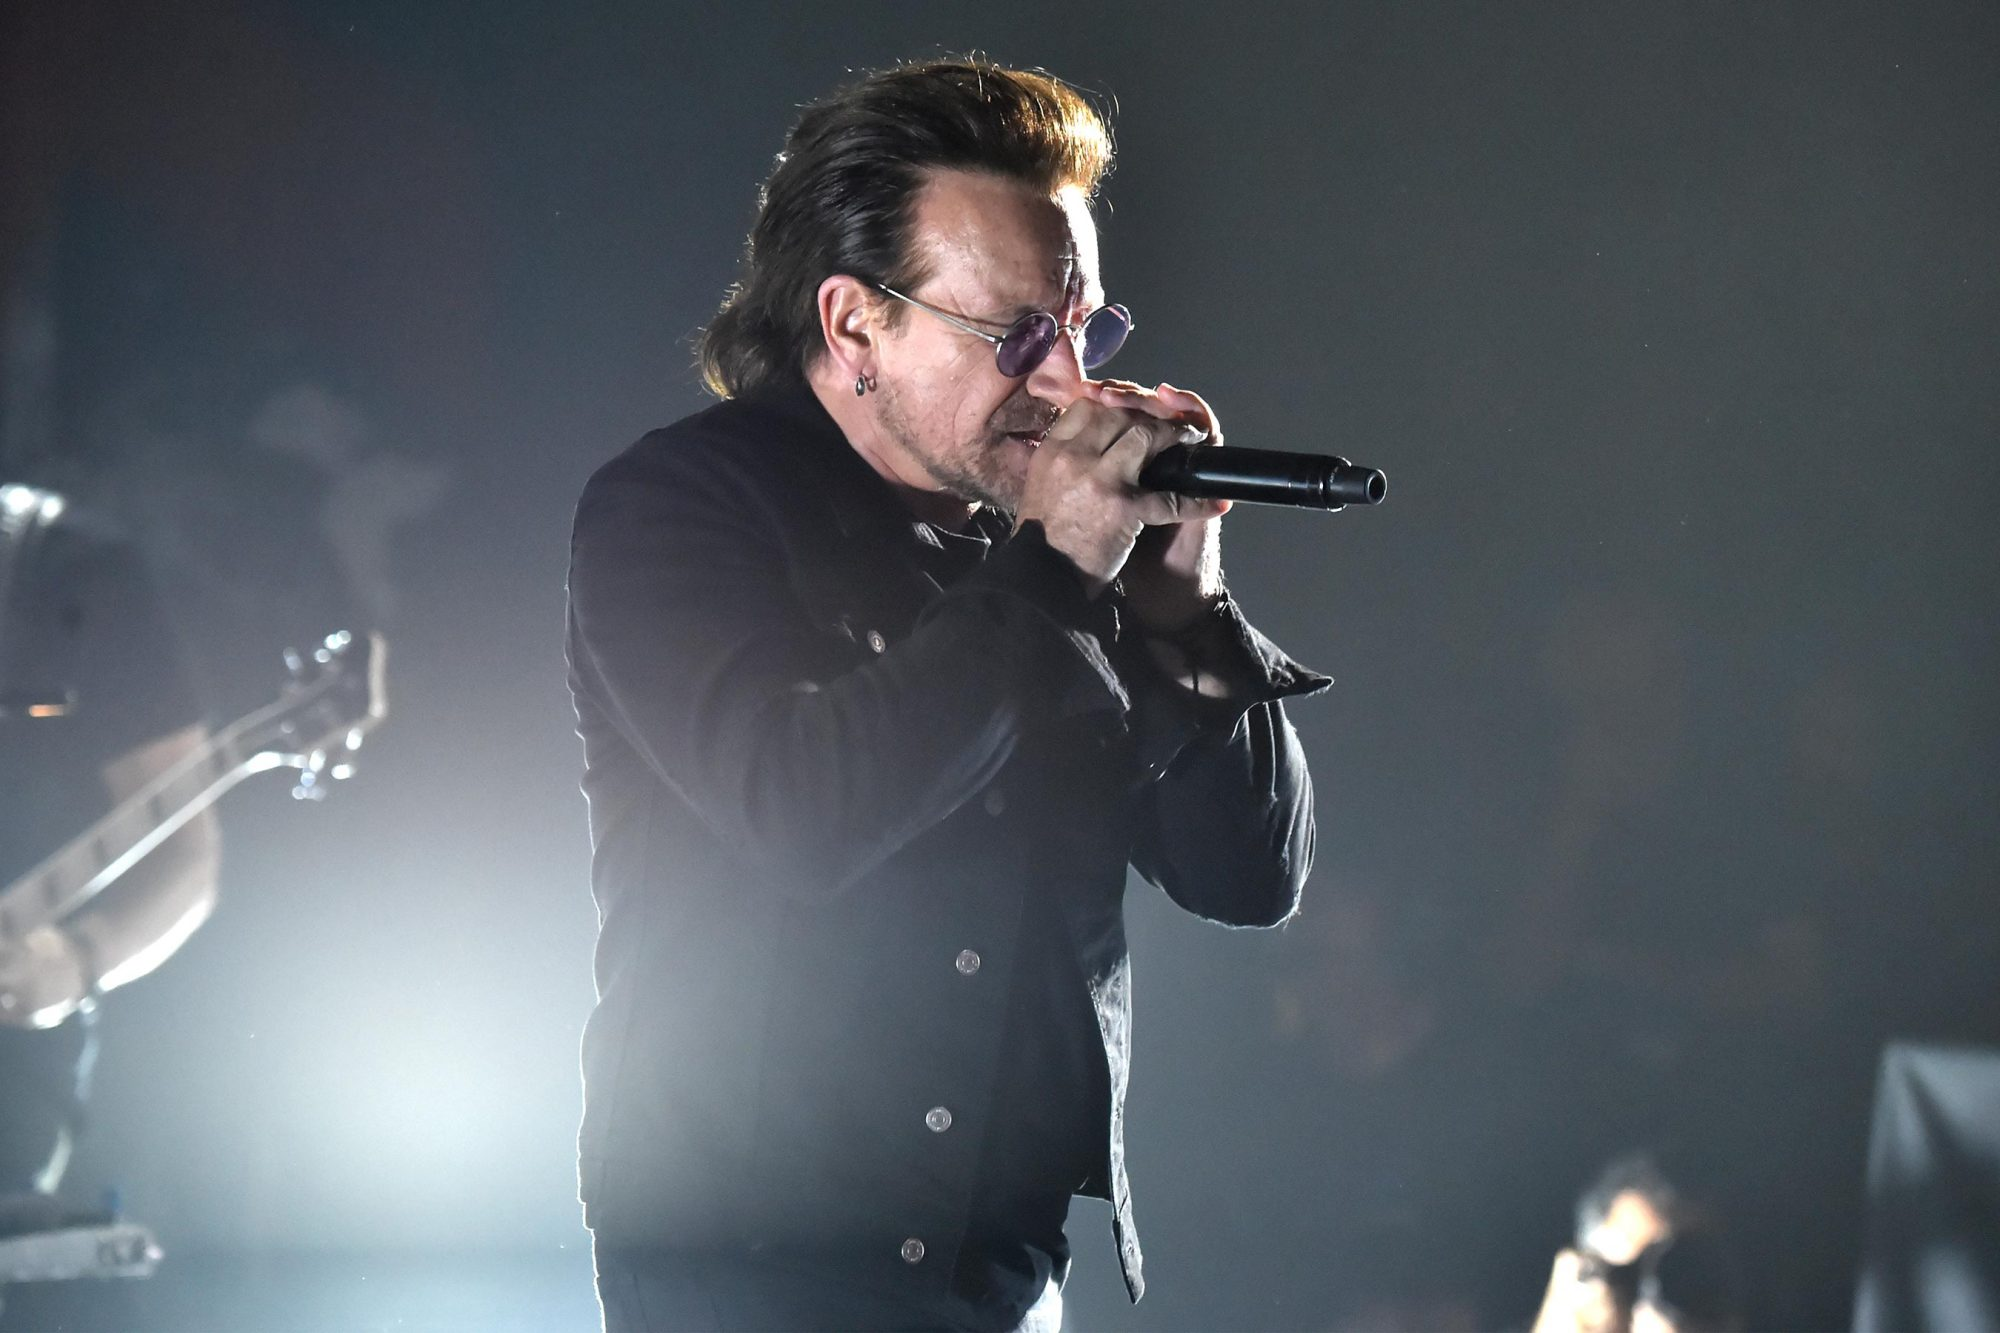 SiriusXM Presents U2 Live At The Apollo